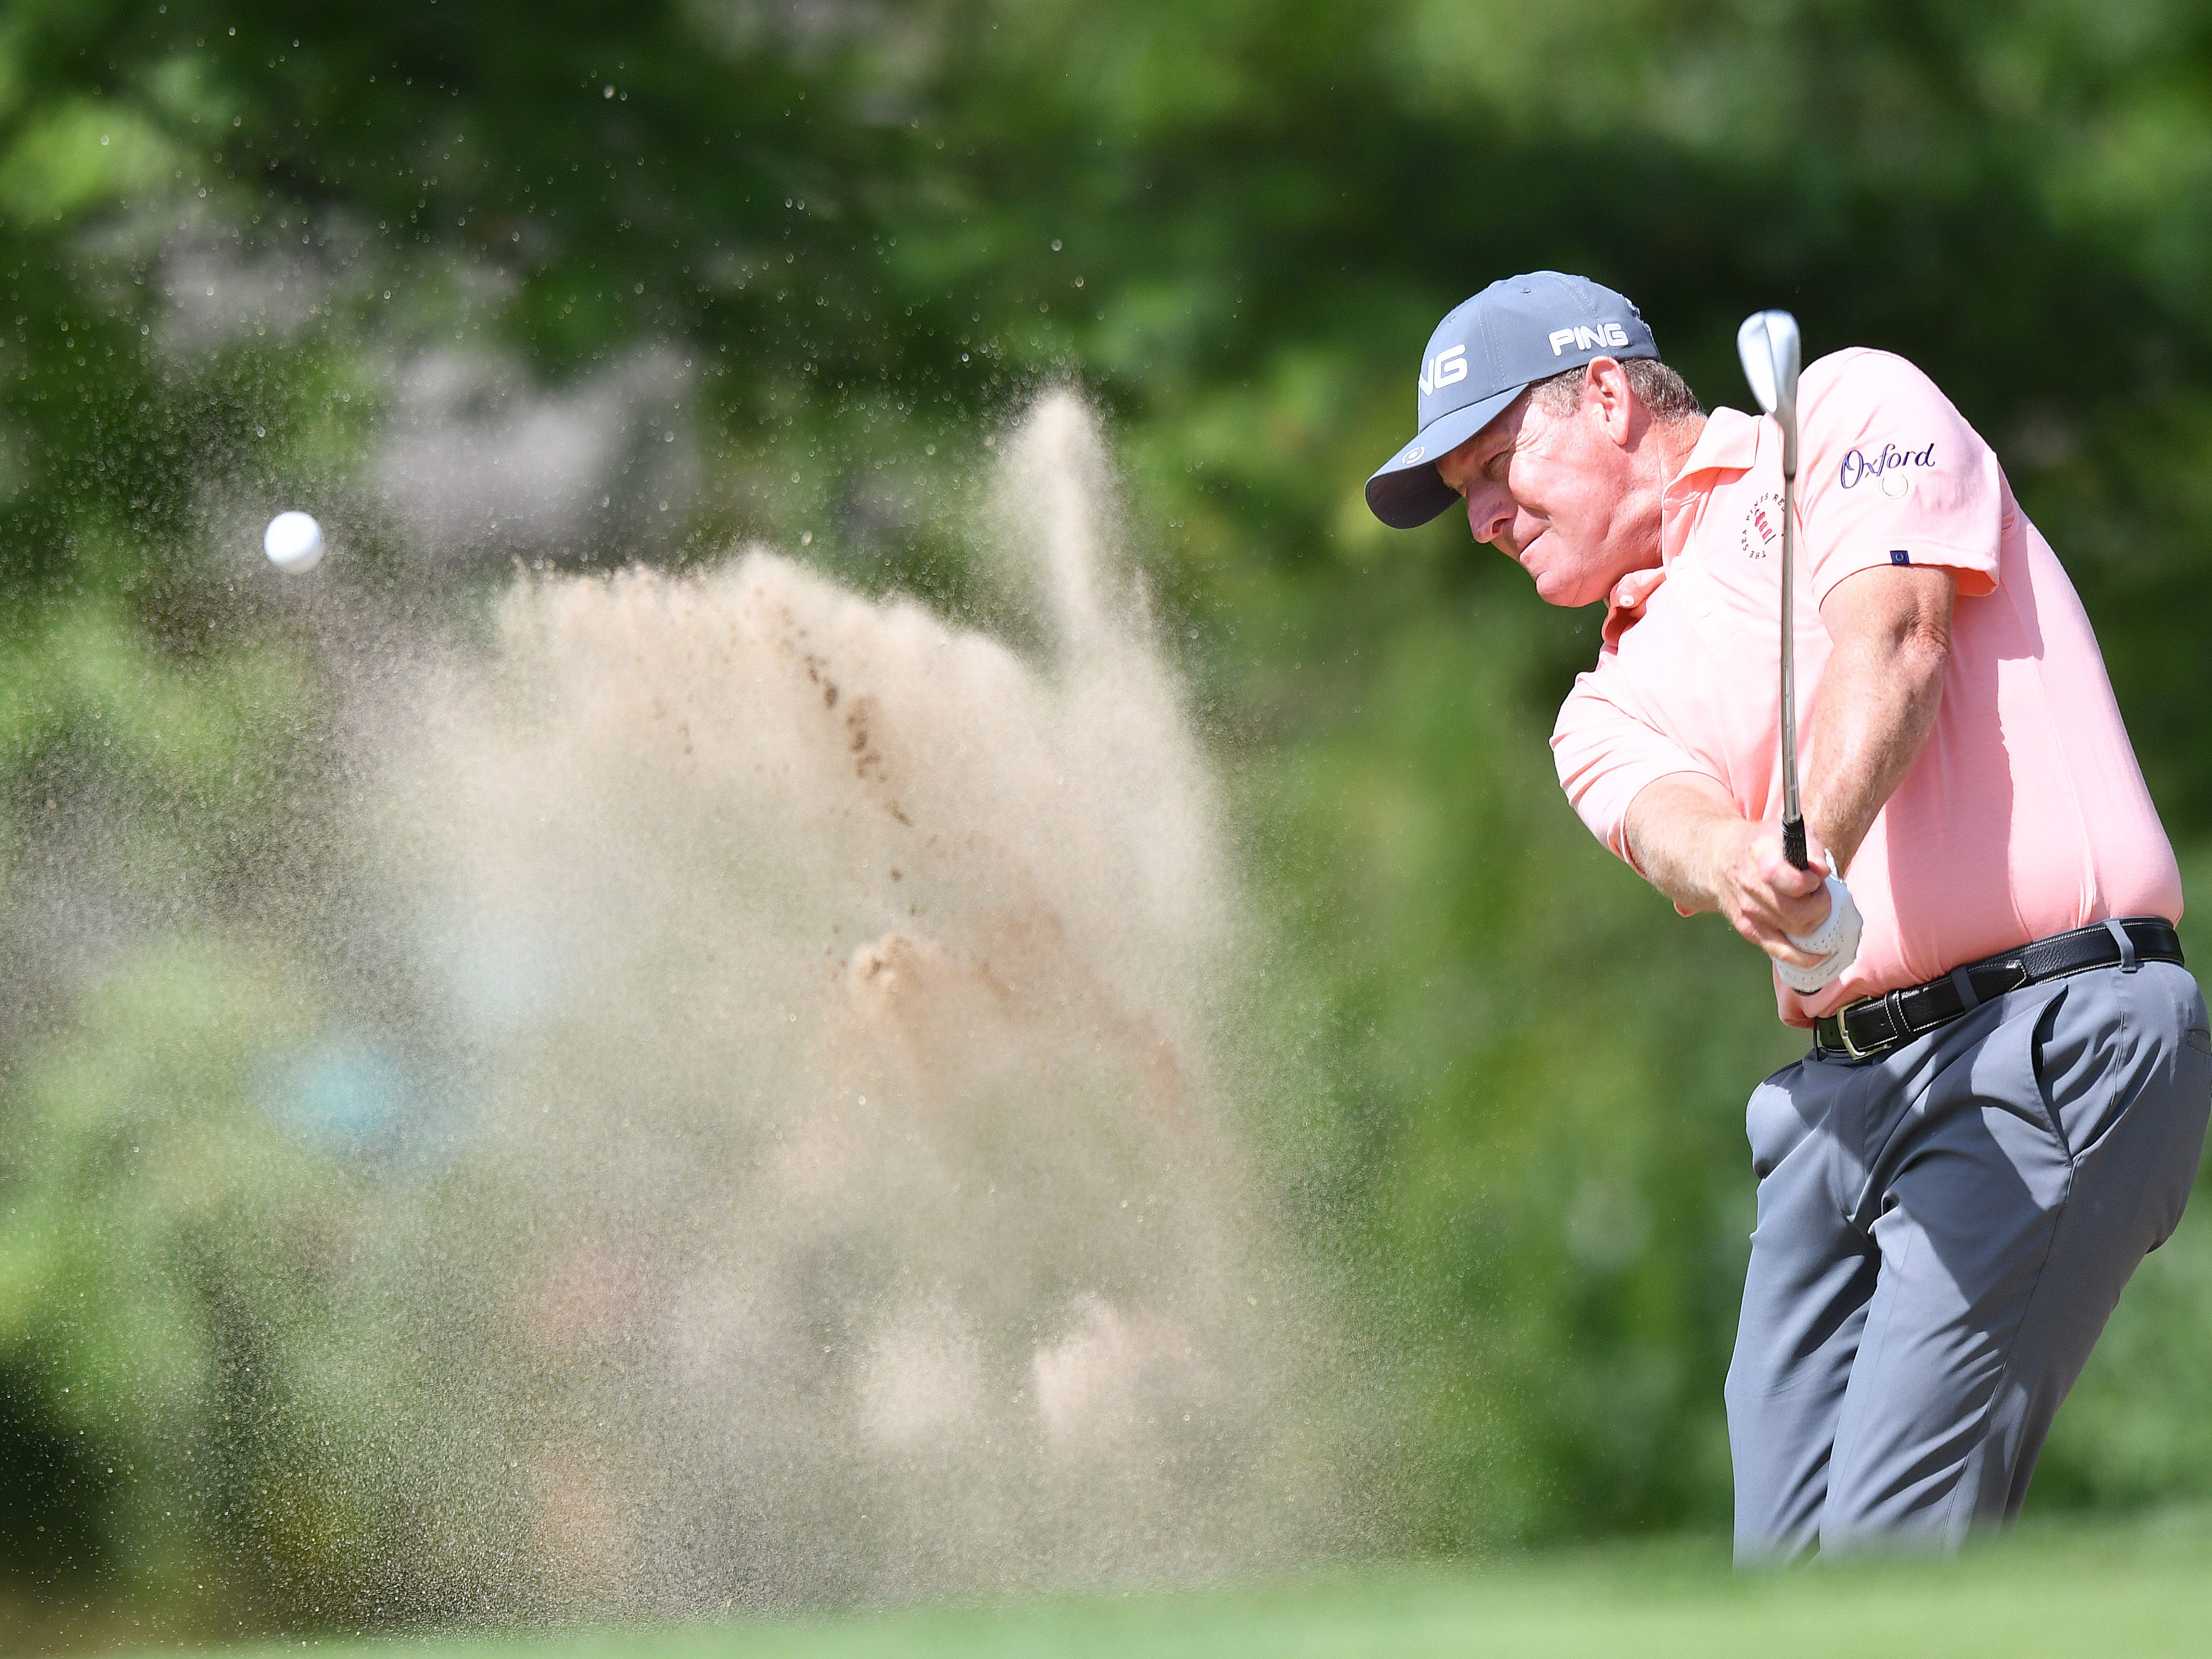 Jeff Maggert hits out of a bunker on the first hole.